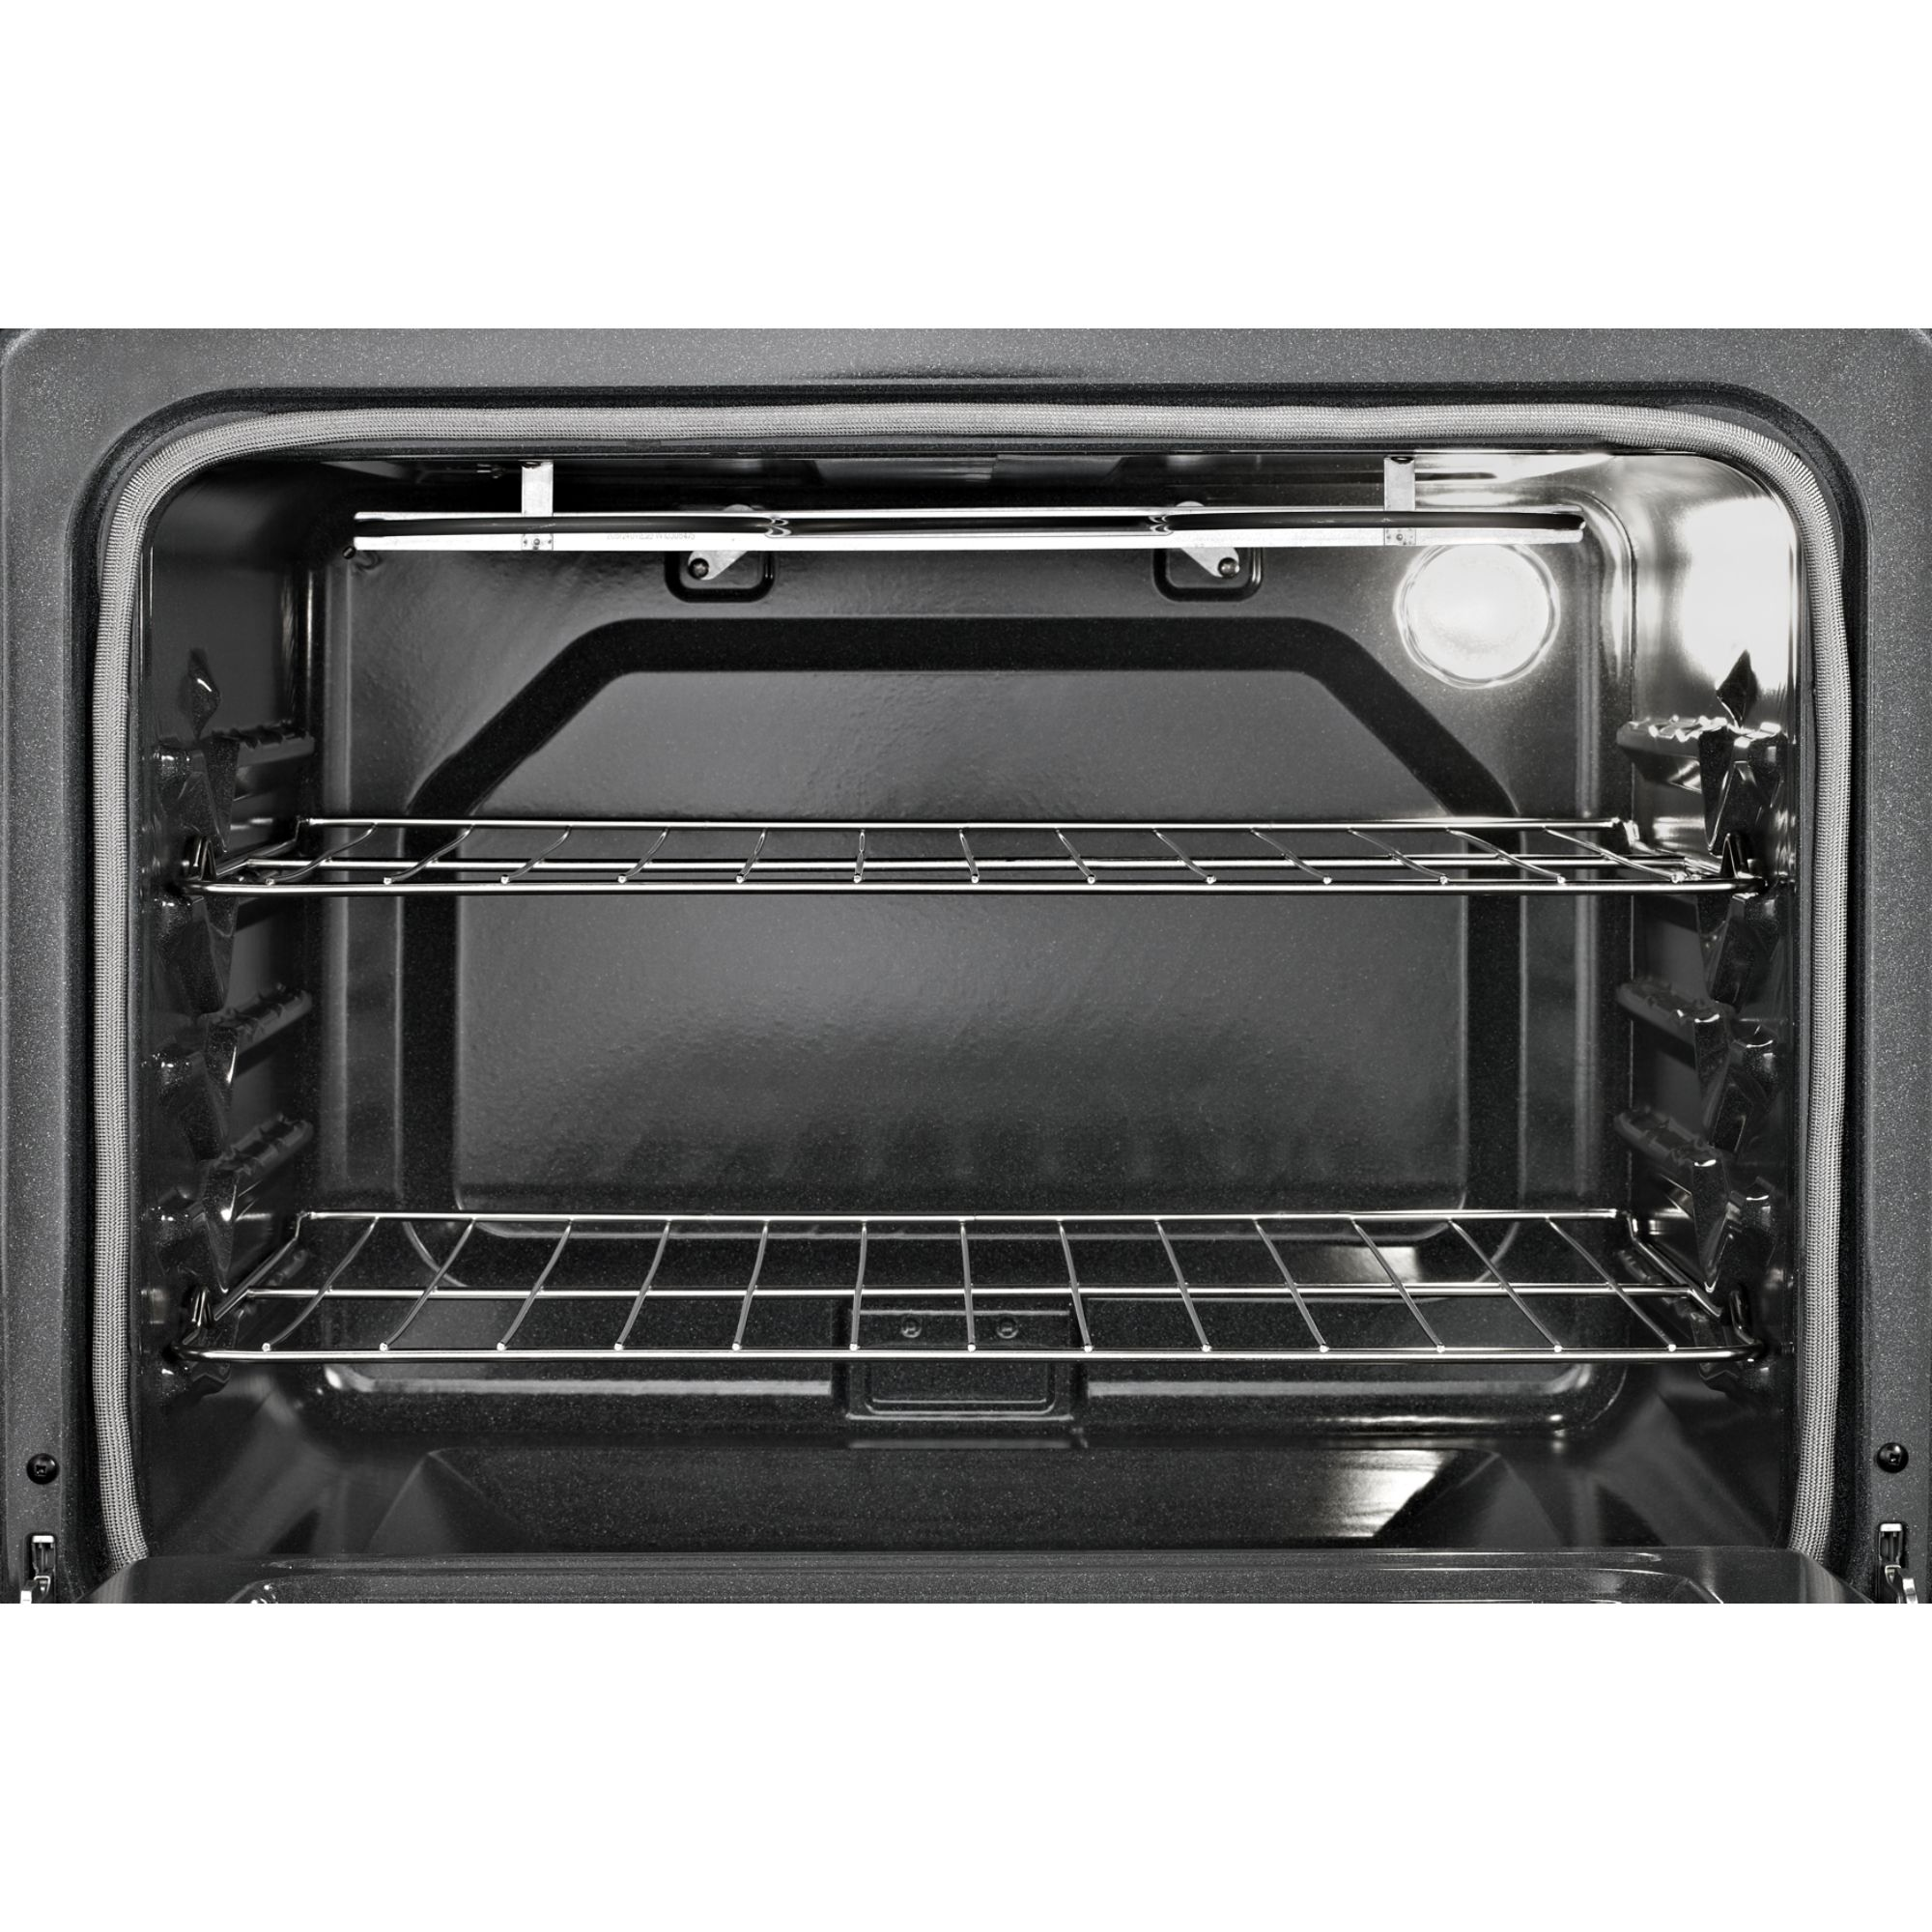 Whirlpool 5.3 cu. ft. Electric Range w/ SteamClean Option - Black